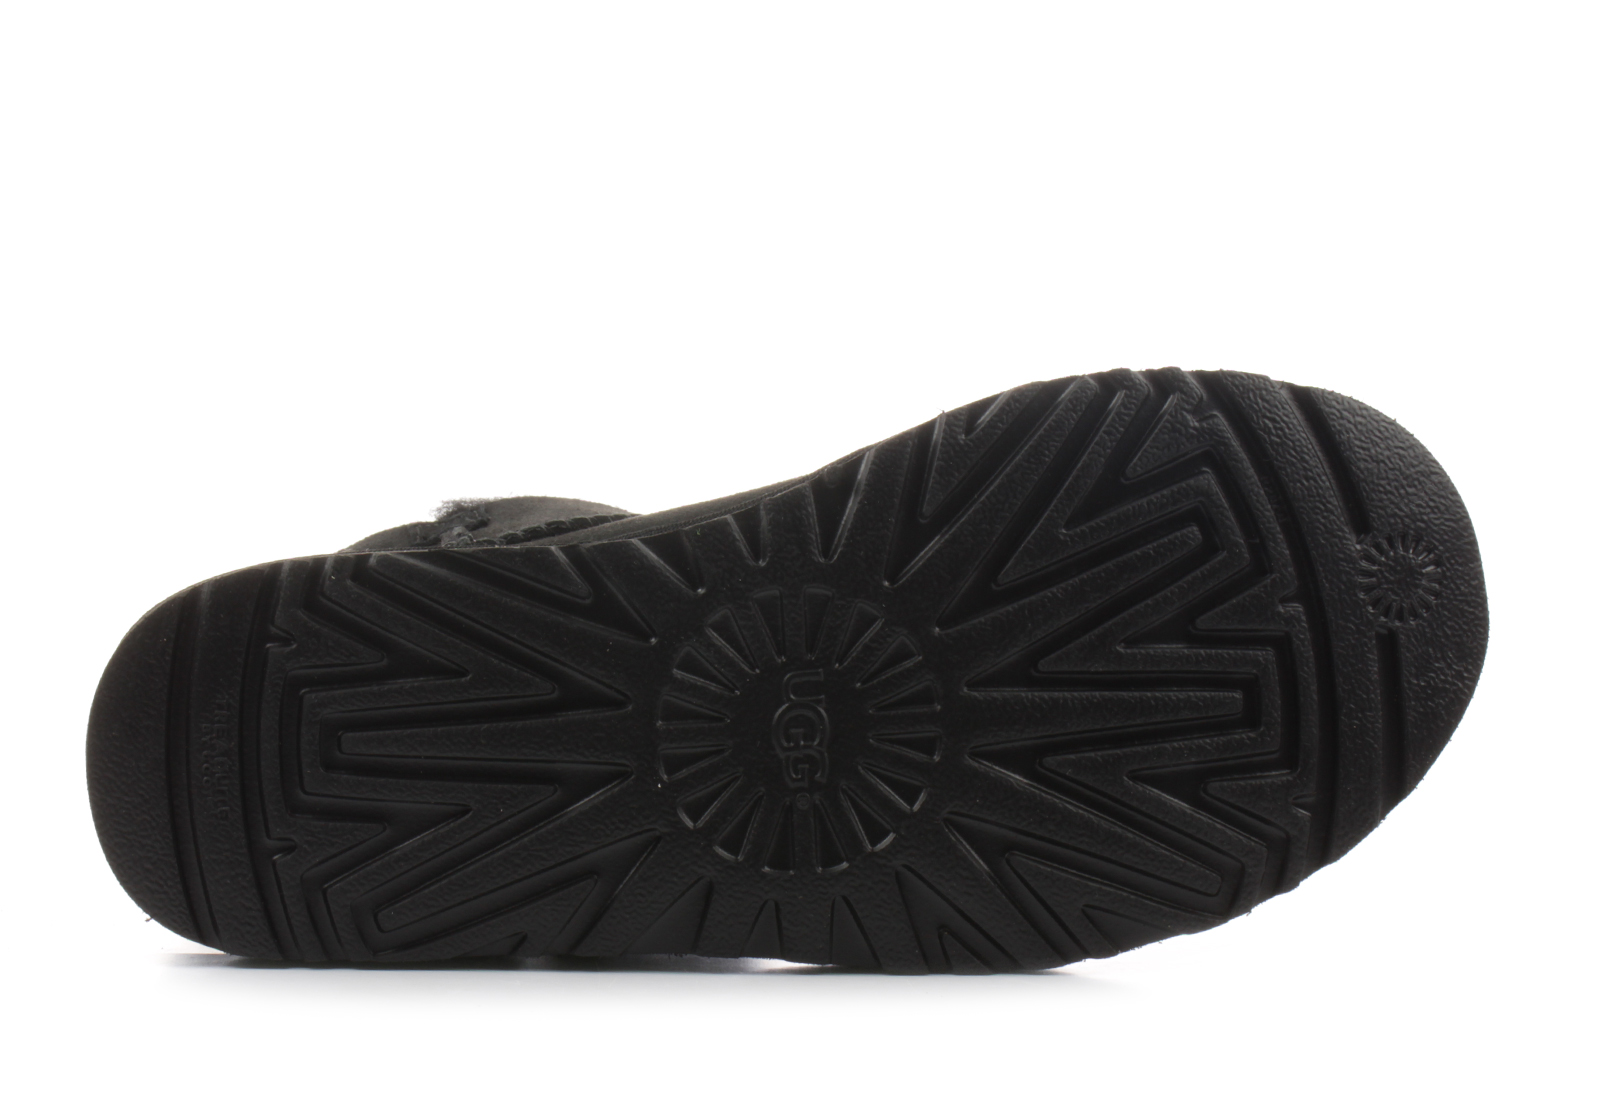 eac62d22407 Ugg Boots - Josey - 1019627-BLK - Online shop for sneakers, shoes and boots